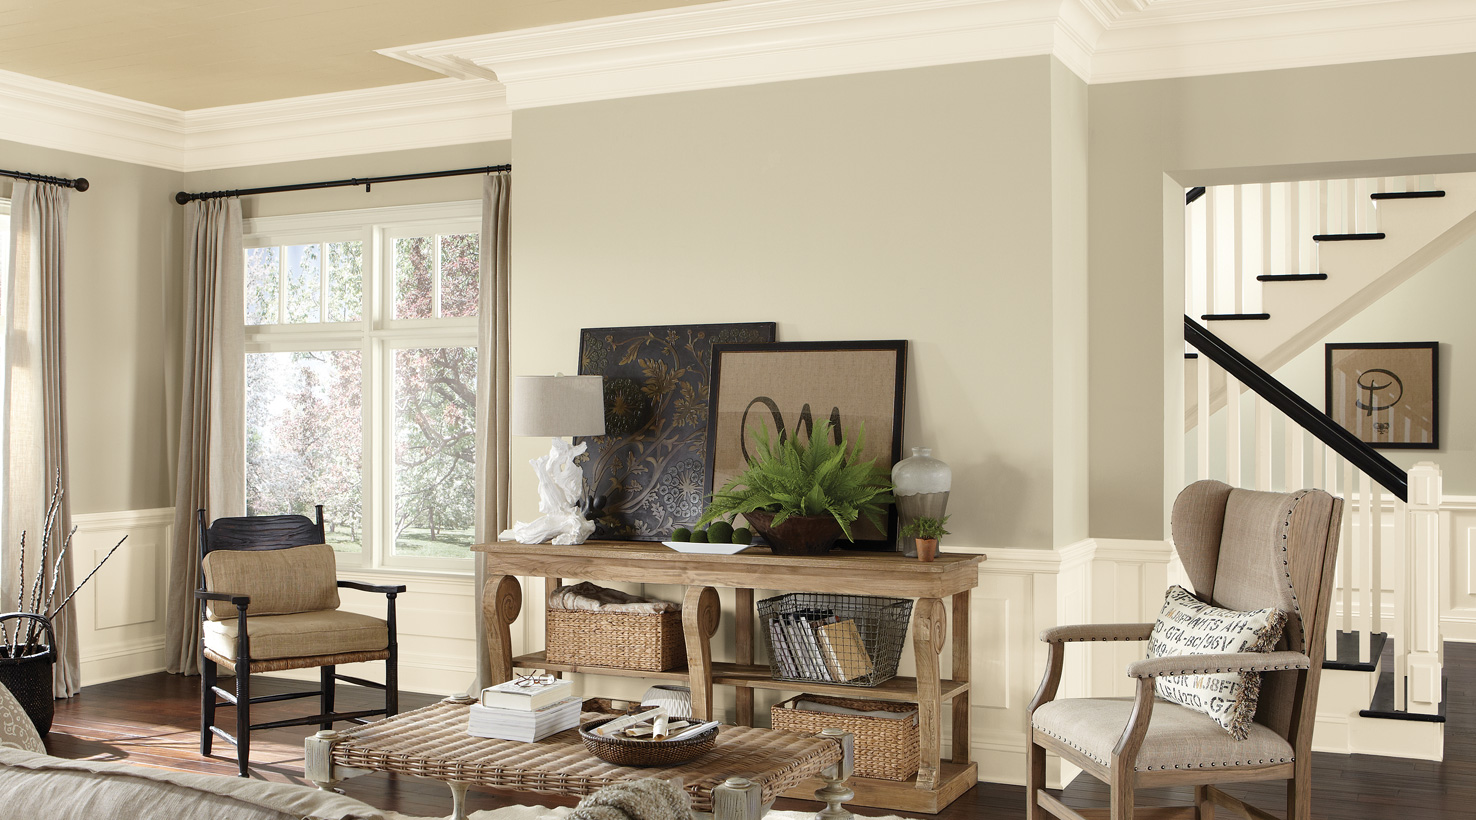 brown paint living room pictures in spanish quizlet color ideas inspiration gallery sherwin williams whites